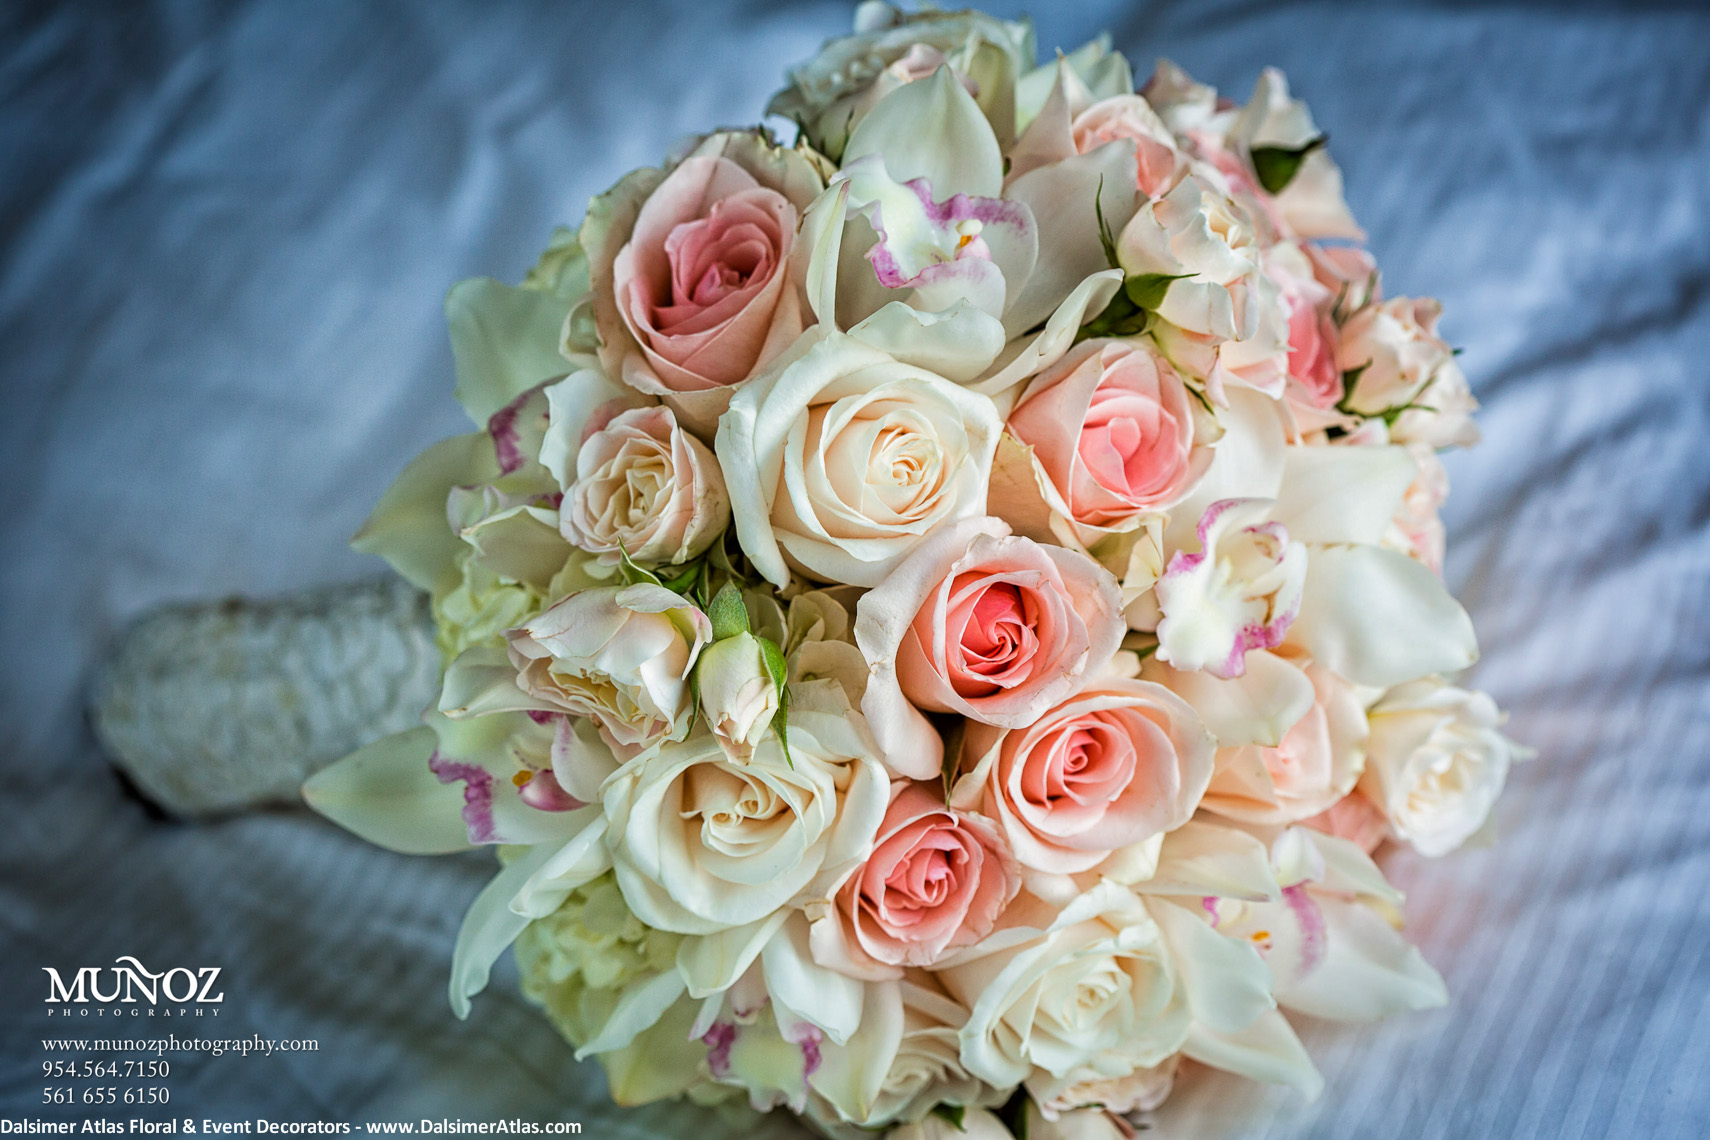 Bridal Bouquet Roses Orchids Pink White Cream